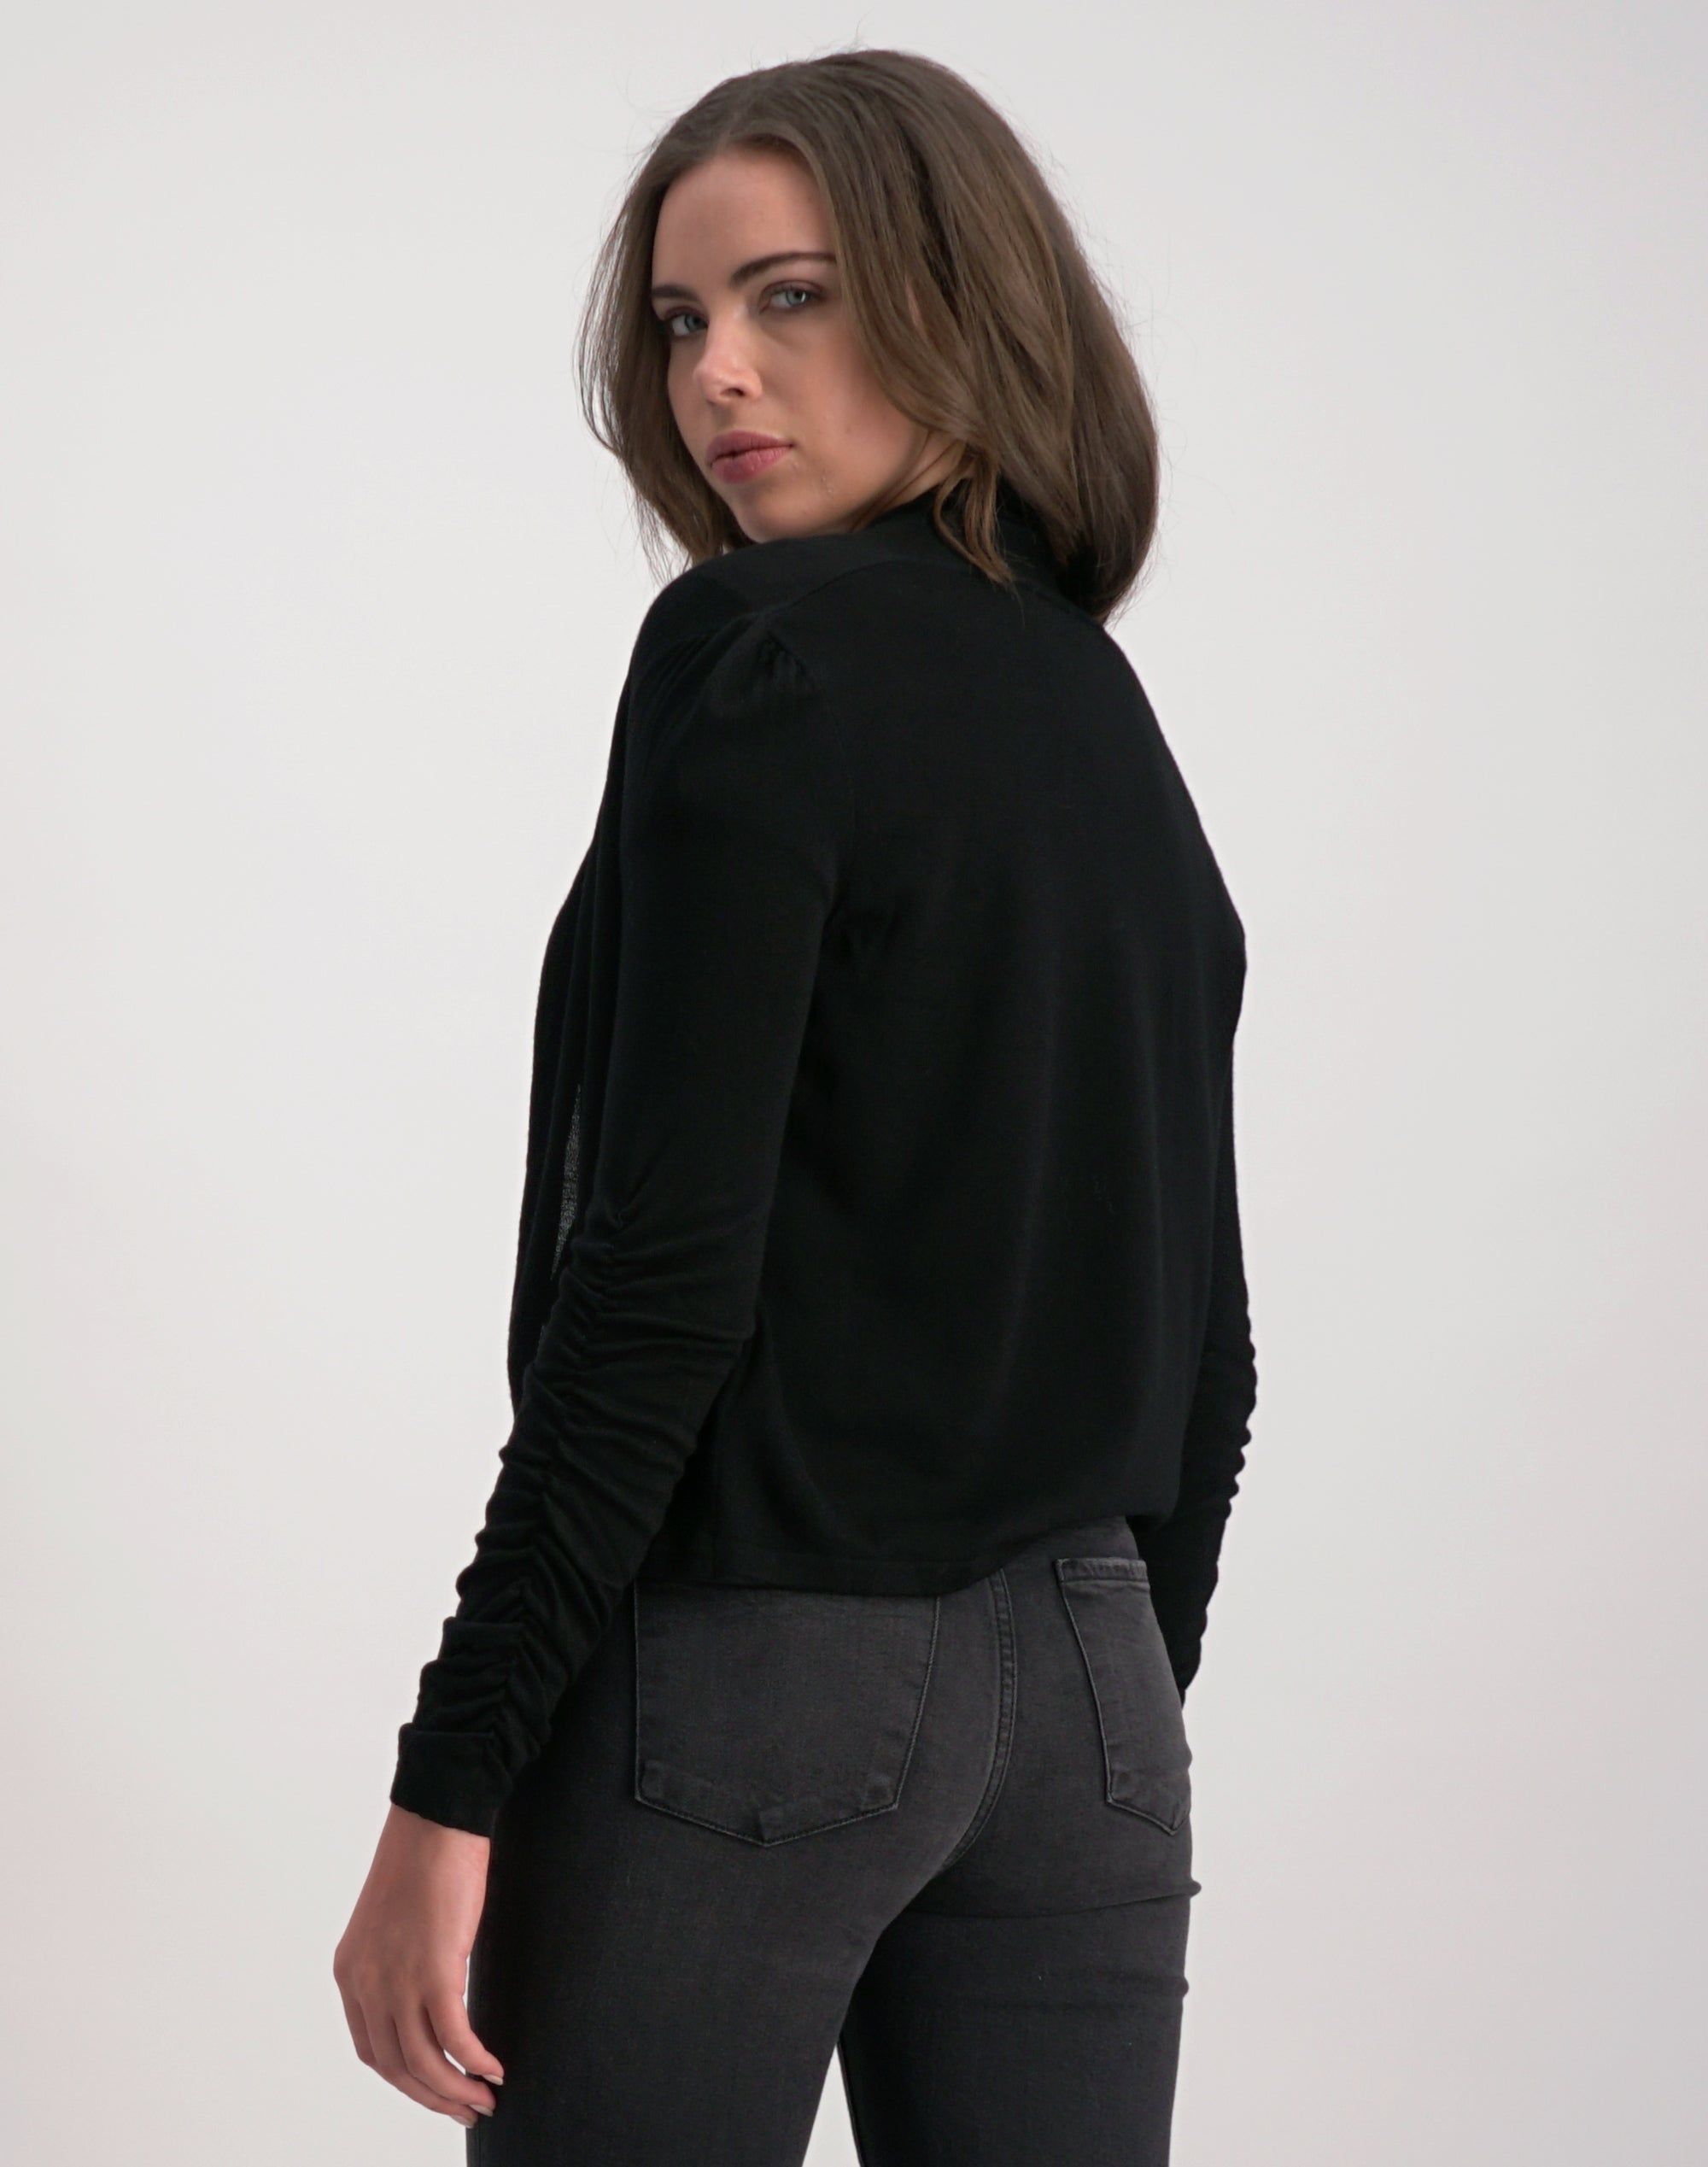 Ensemble Merino Shrug